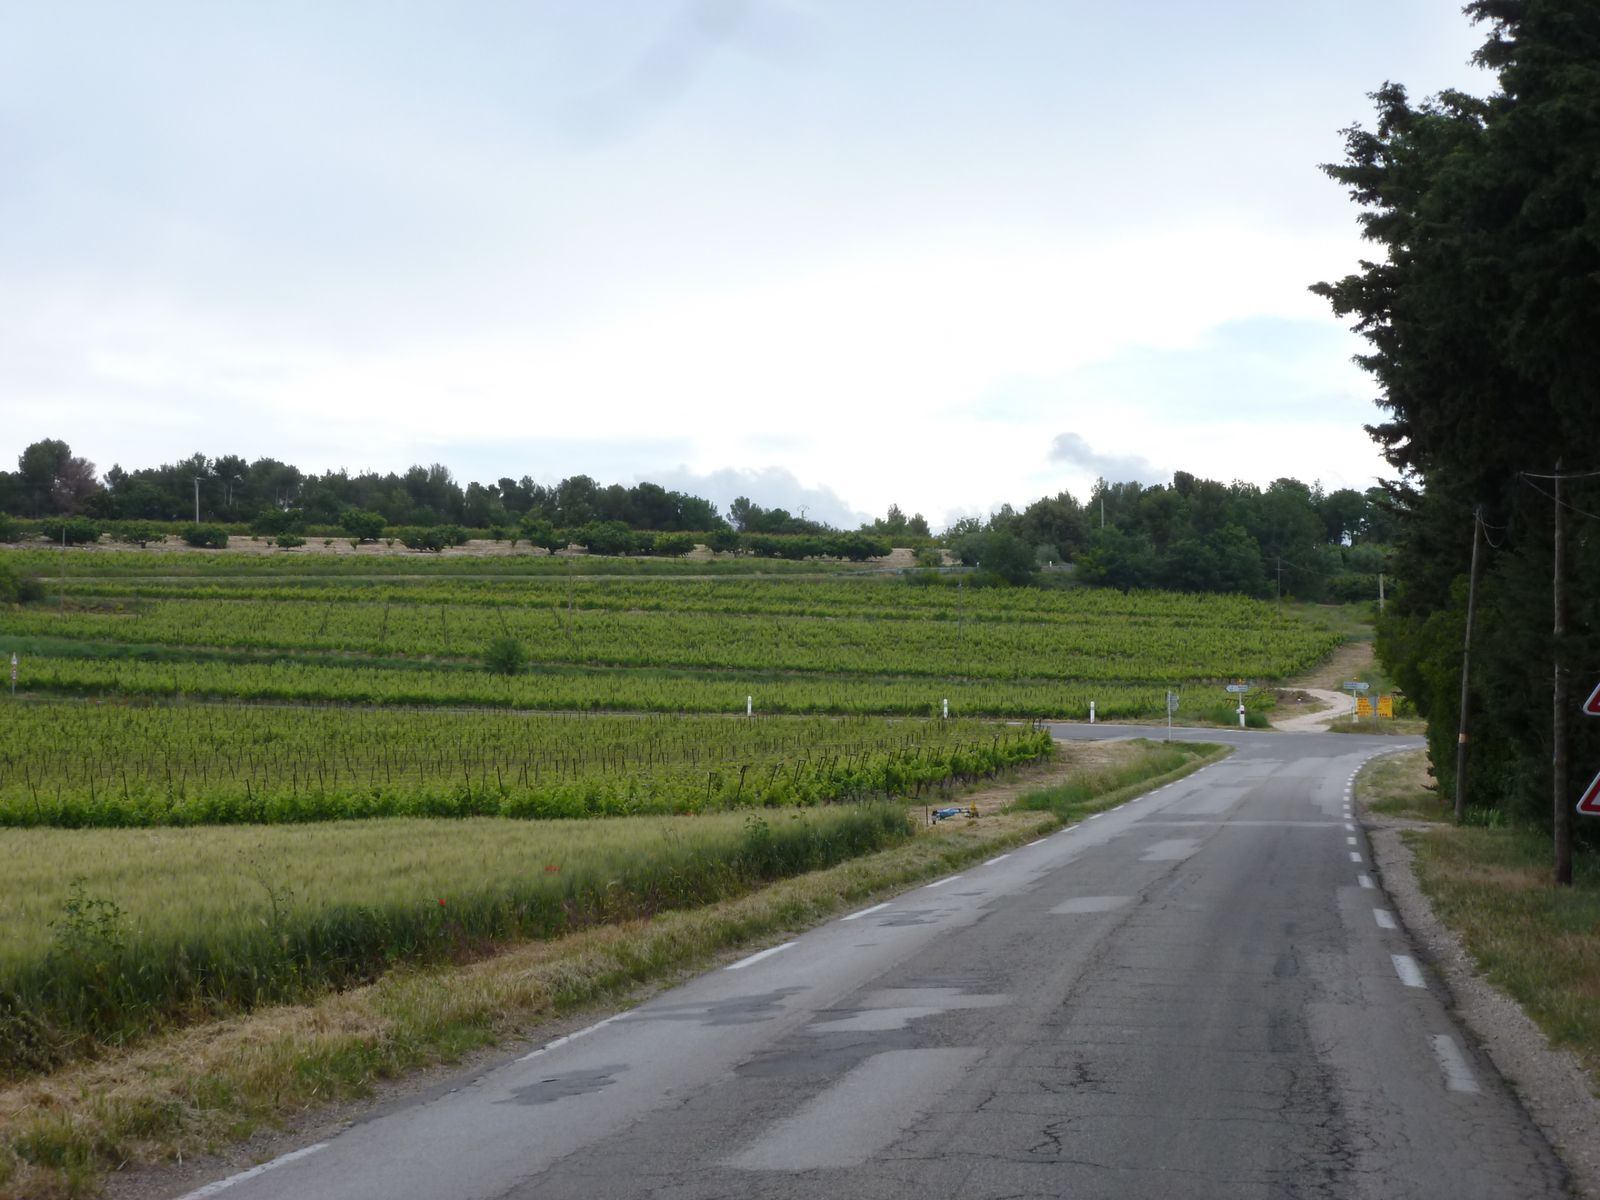 Vineyards - typical of the region